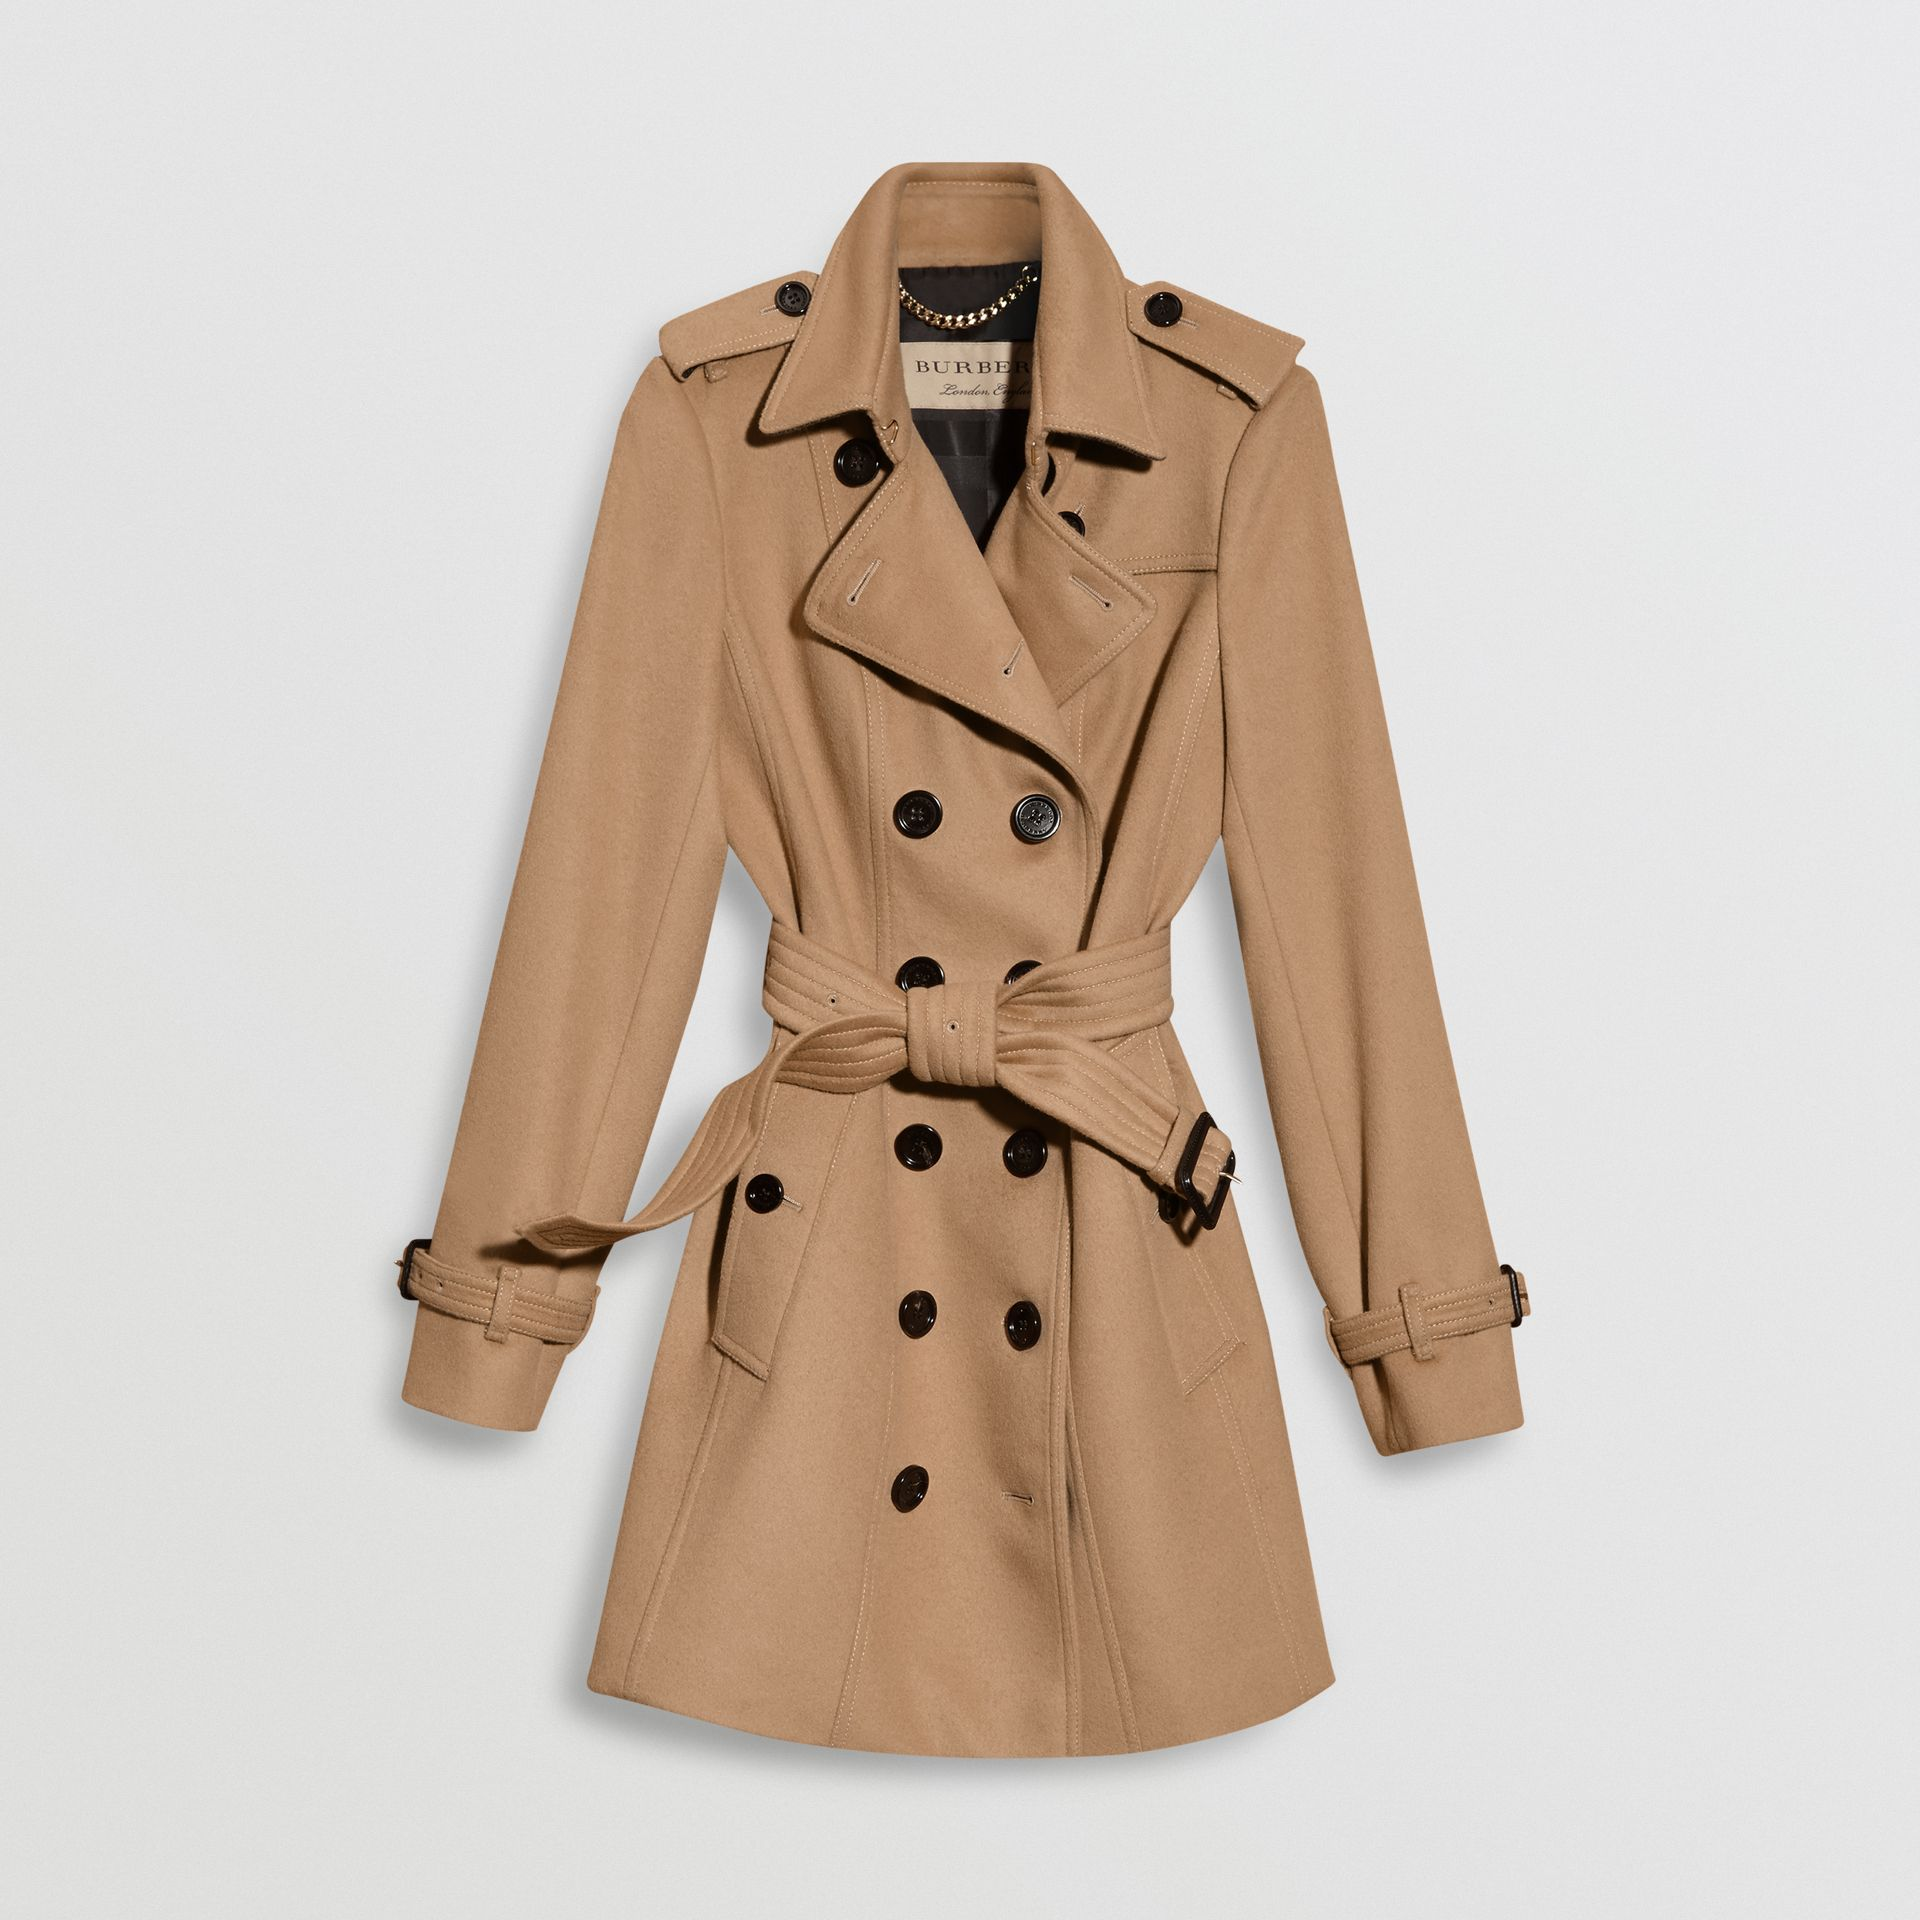 Wool Cashmere Trench Coat with Fur Collar in Camel - Women | Burberry United States - gallery image 3